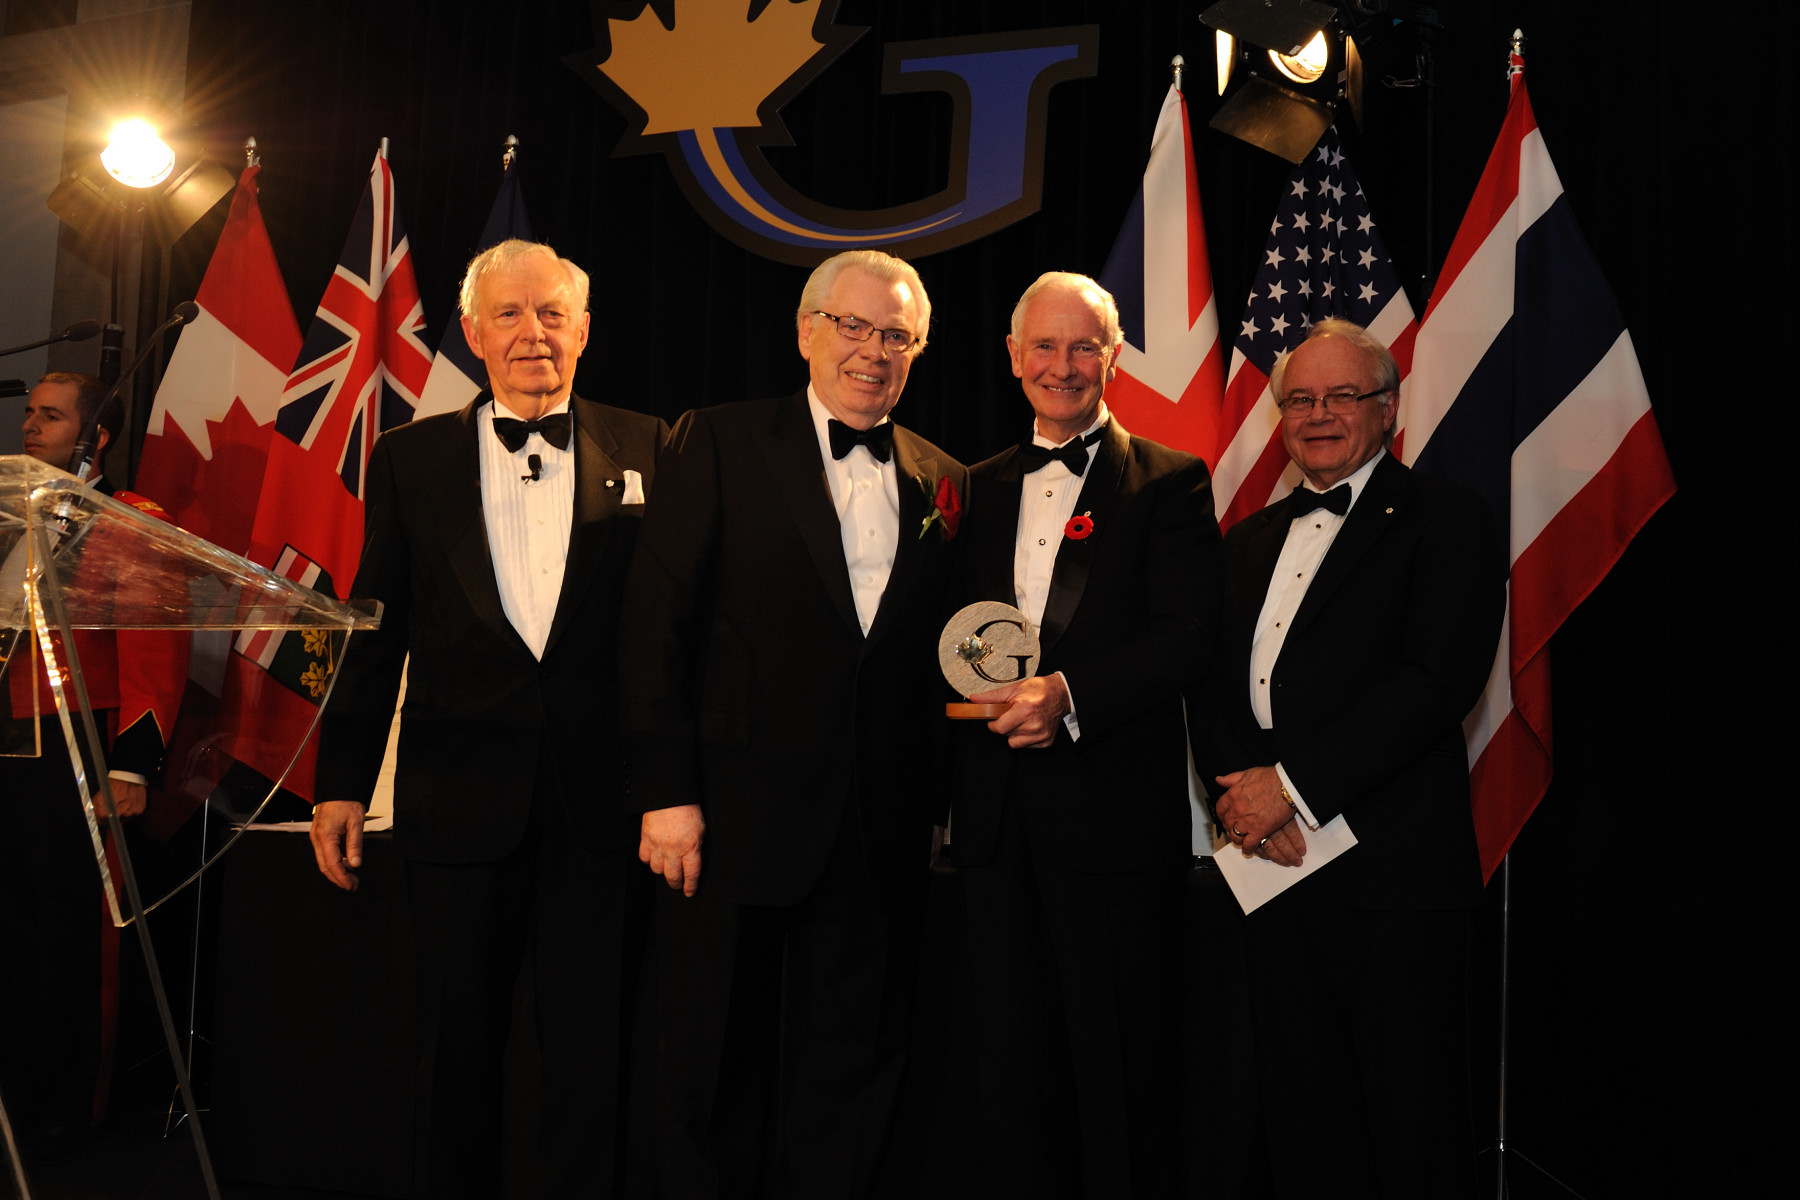 The Governor General presented the 2010 Canada Gairdner Wightman Award to Dr. Cal Stiller (left). The Canada Gairdner Wightman Award gives particular recognition to Canadian leaders in medical science.